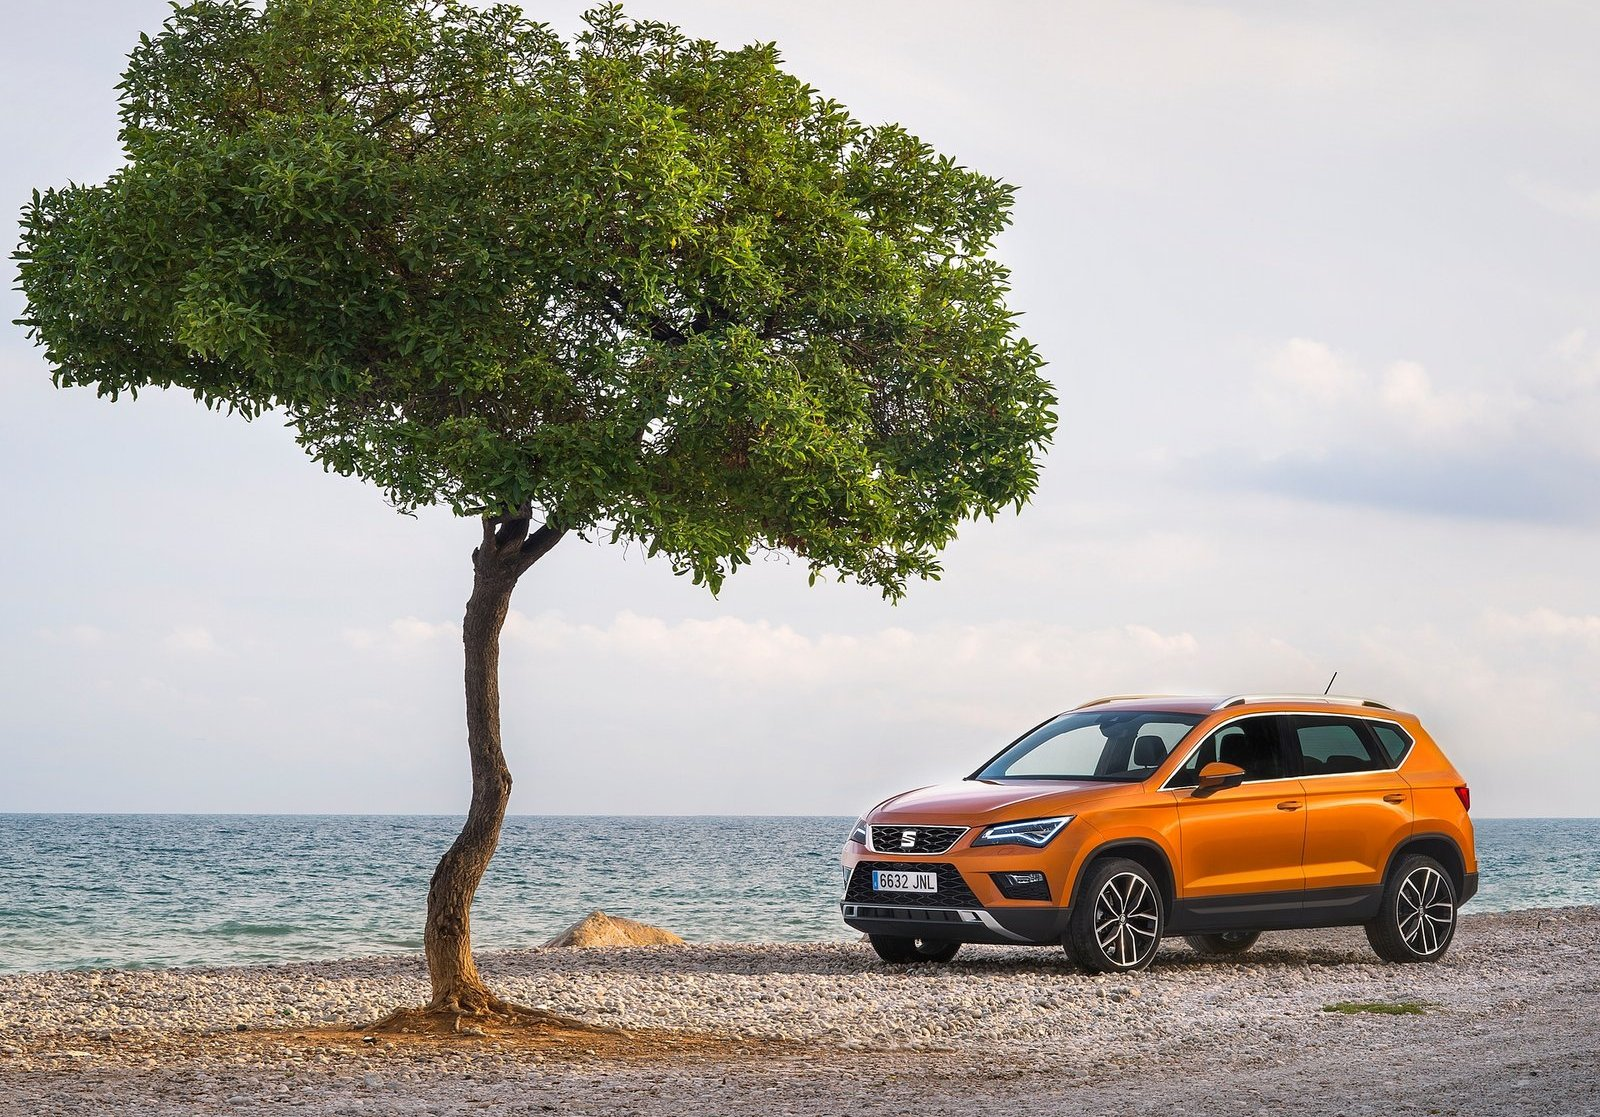 2018 Seat Ateca images HD Orange color